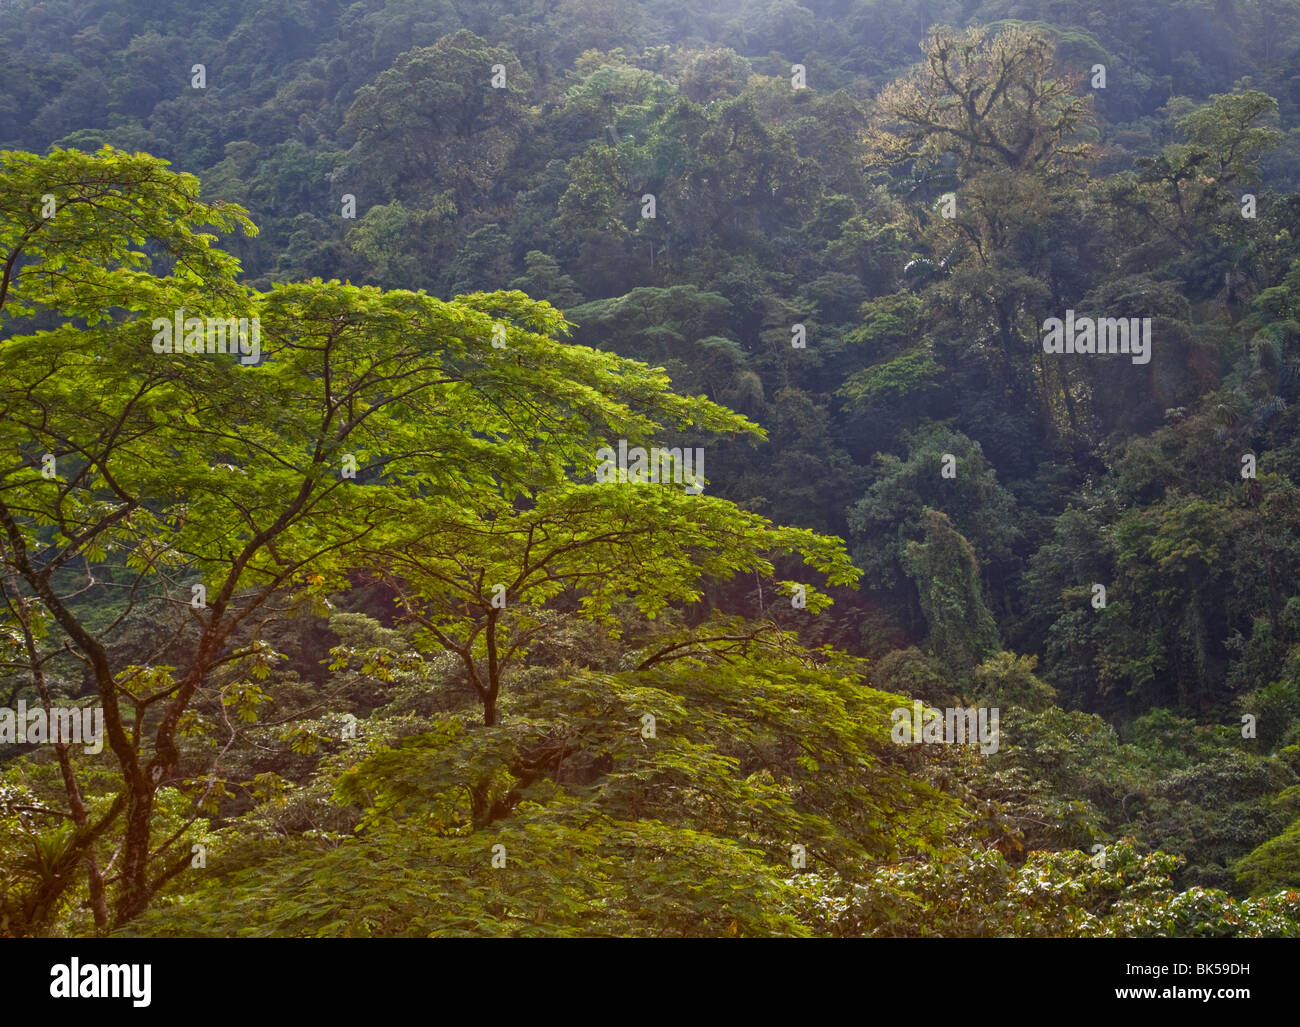 Neotropical rainforest shades of green colours in tropical rainforest and river valley Cost Rica - Stock Image